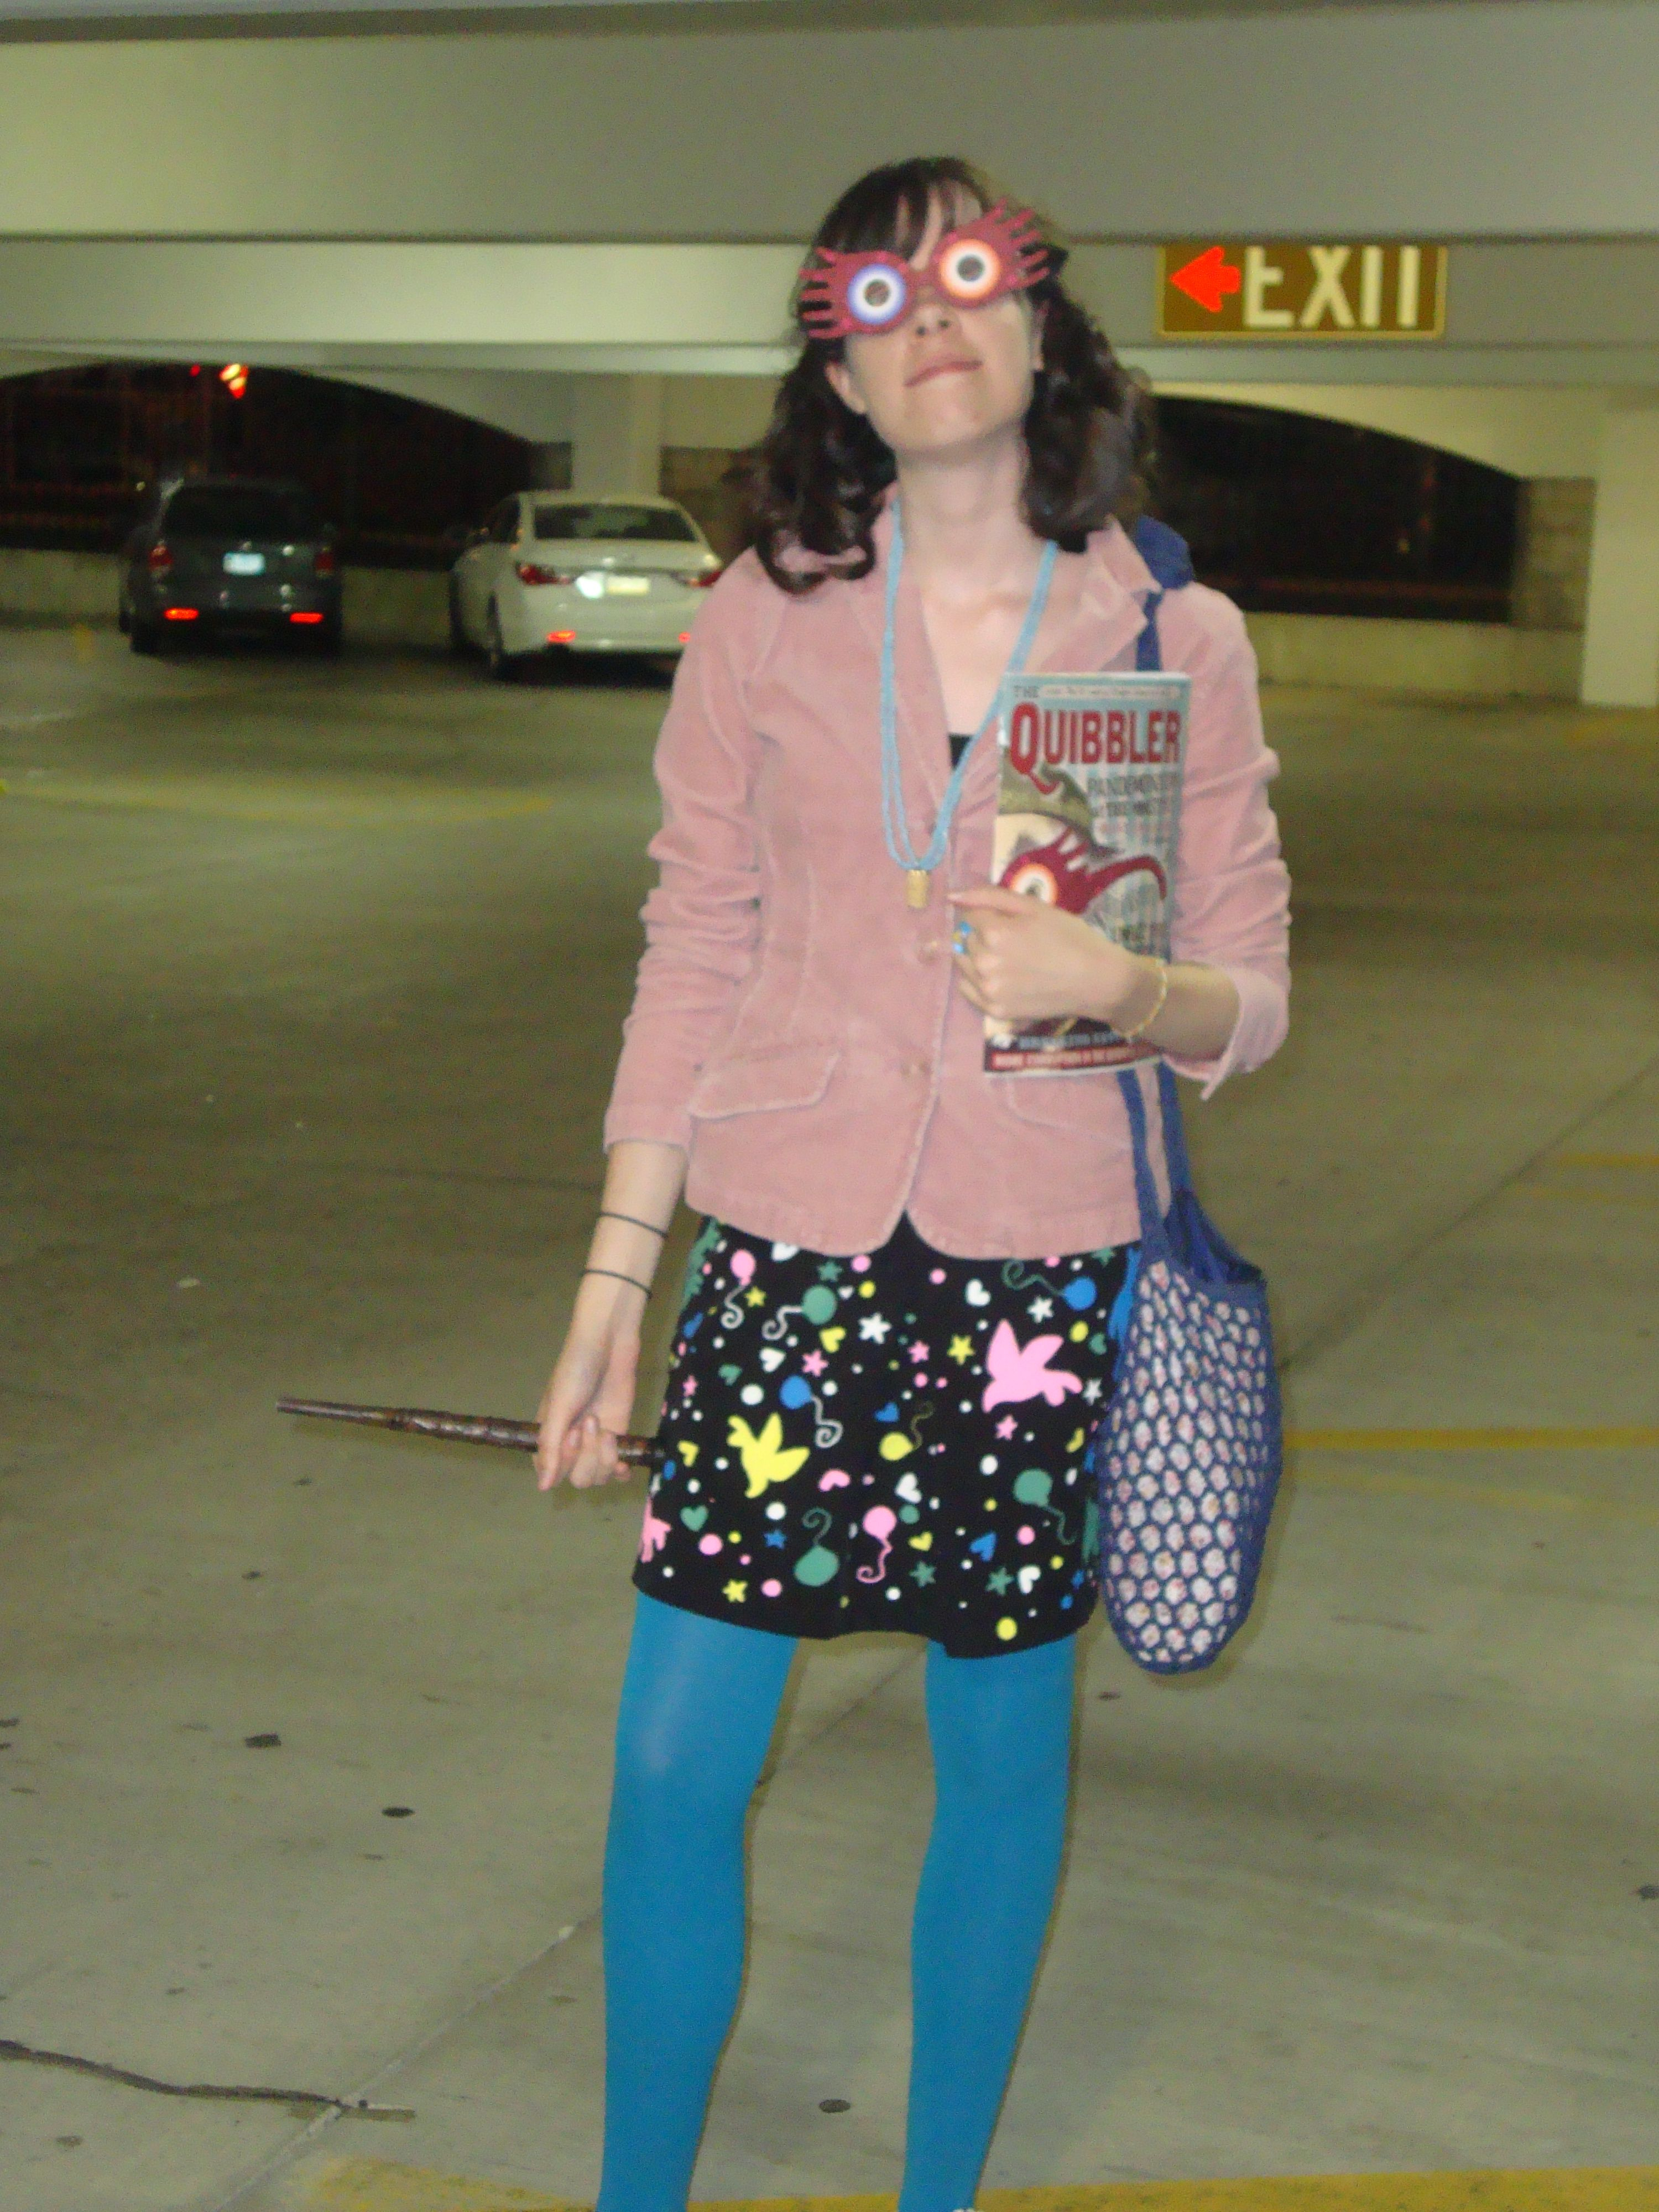 My Luna Lovegood Costume For The Deathly Hallows Pt 2 Midnight Premiere Hand Painted Skirt Quibbler Cover And Sp With Images Luna Lovegood Costume Luna Lovegood Costumes